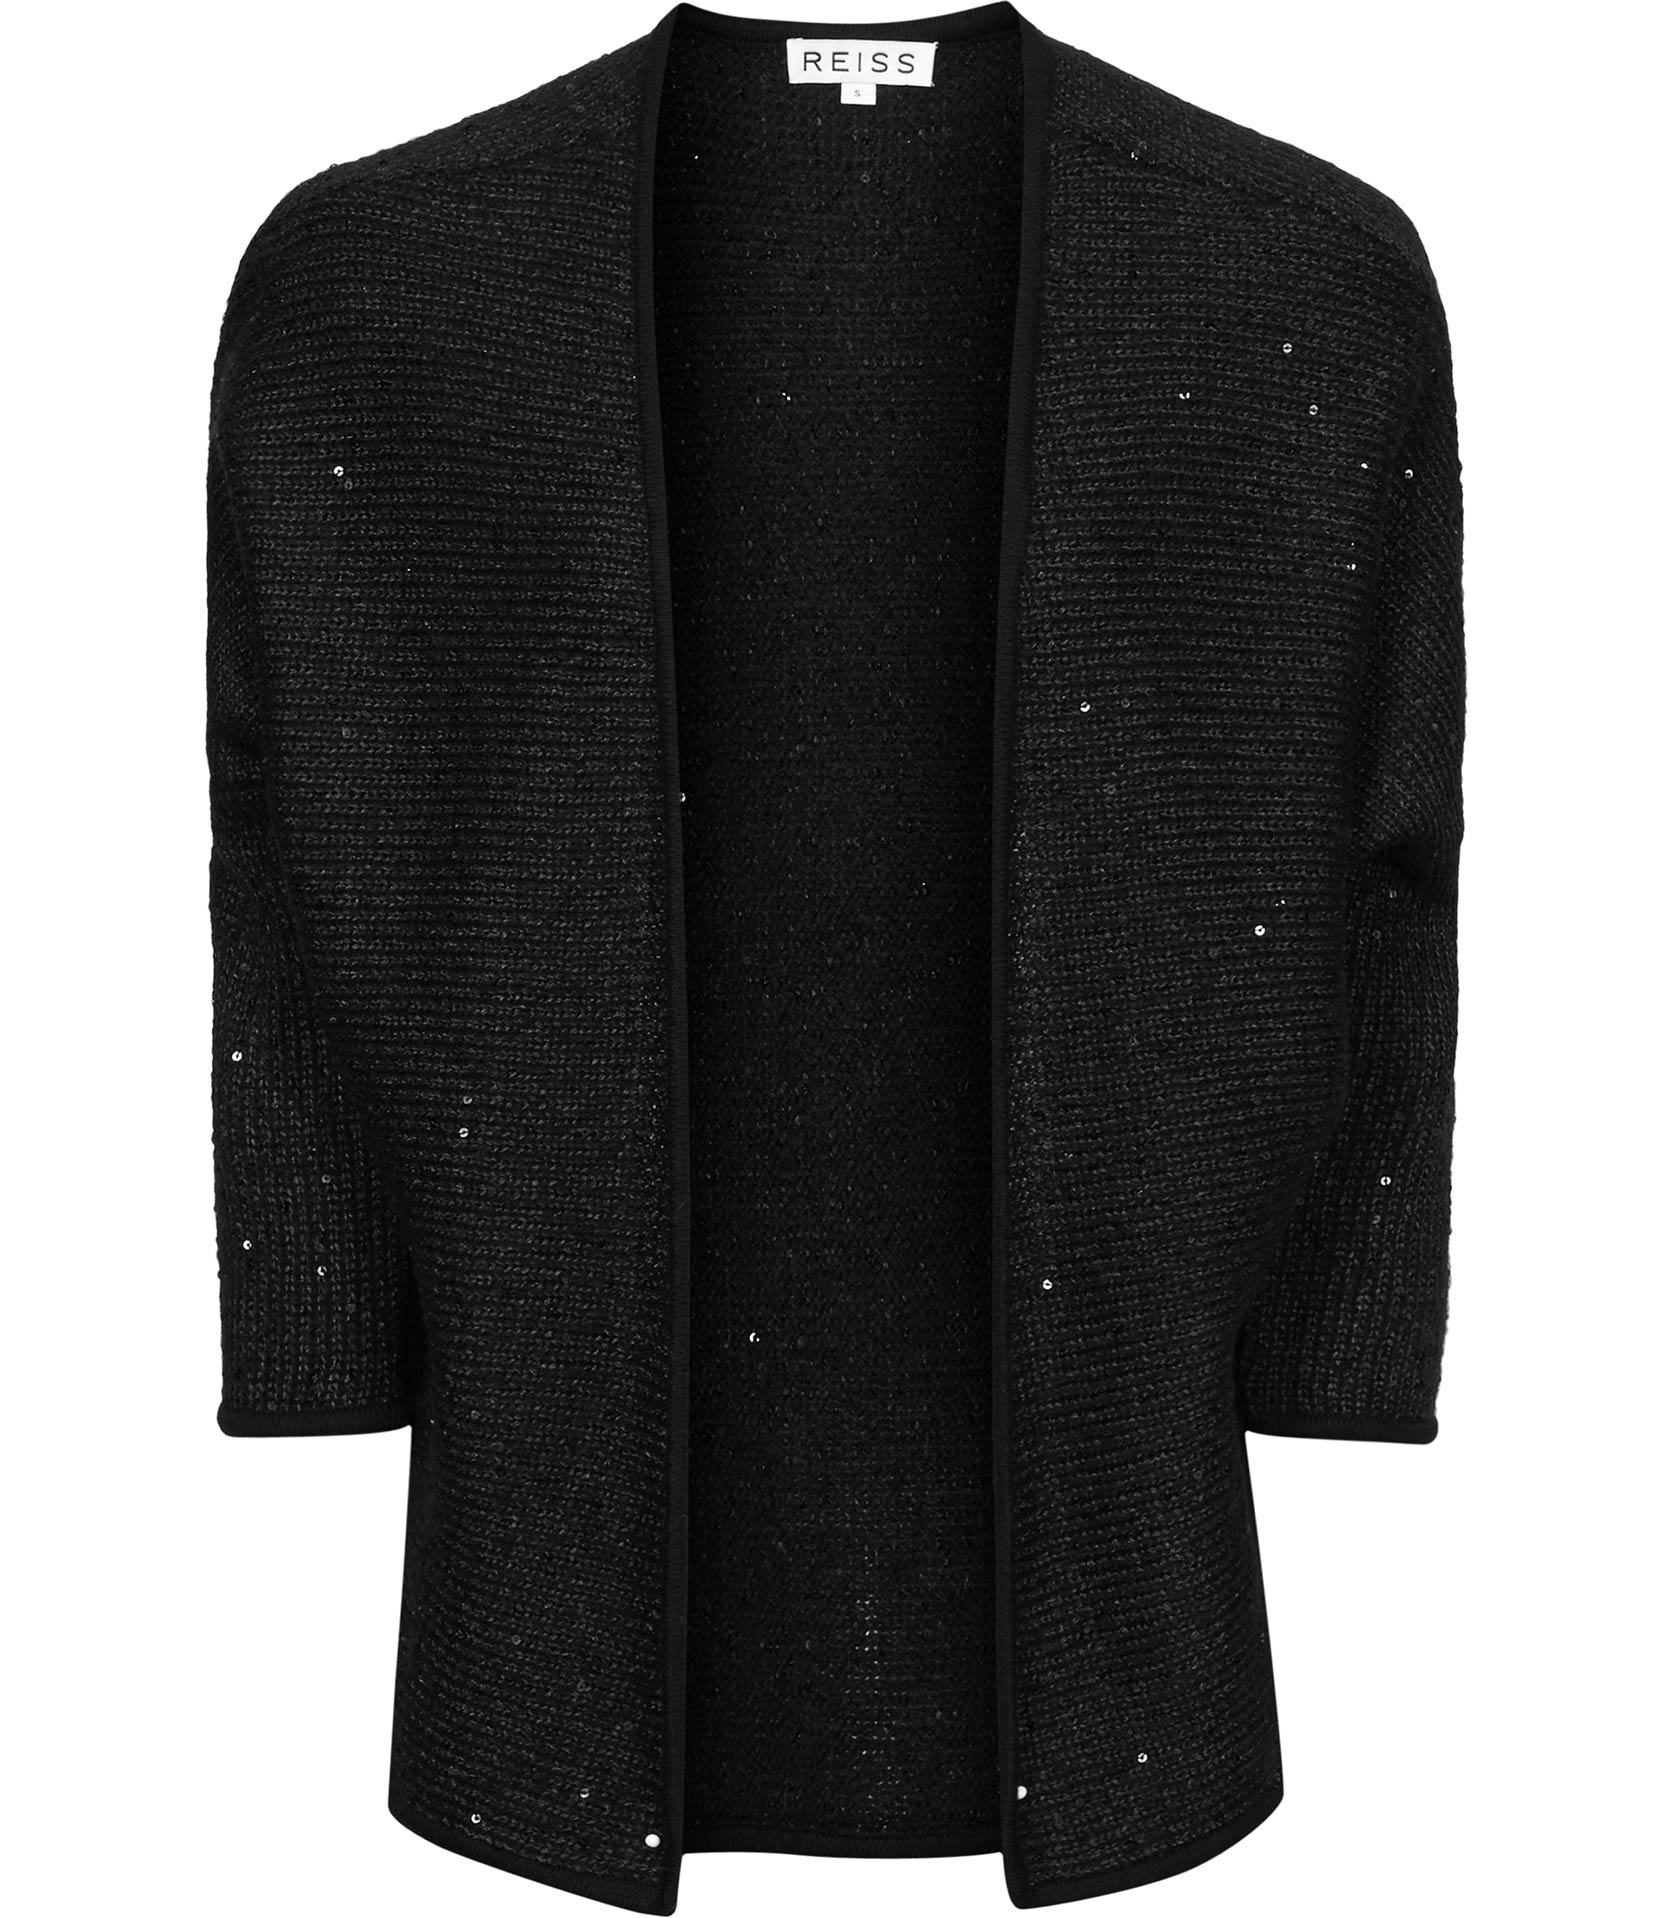 Reiss Louisa Sequin Embellished Cardigan in Black | Lyst